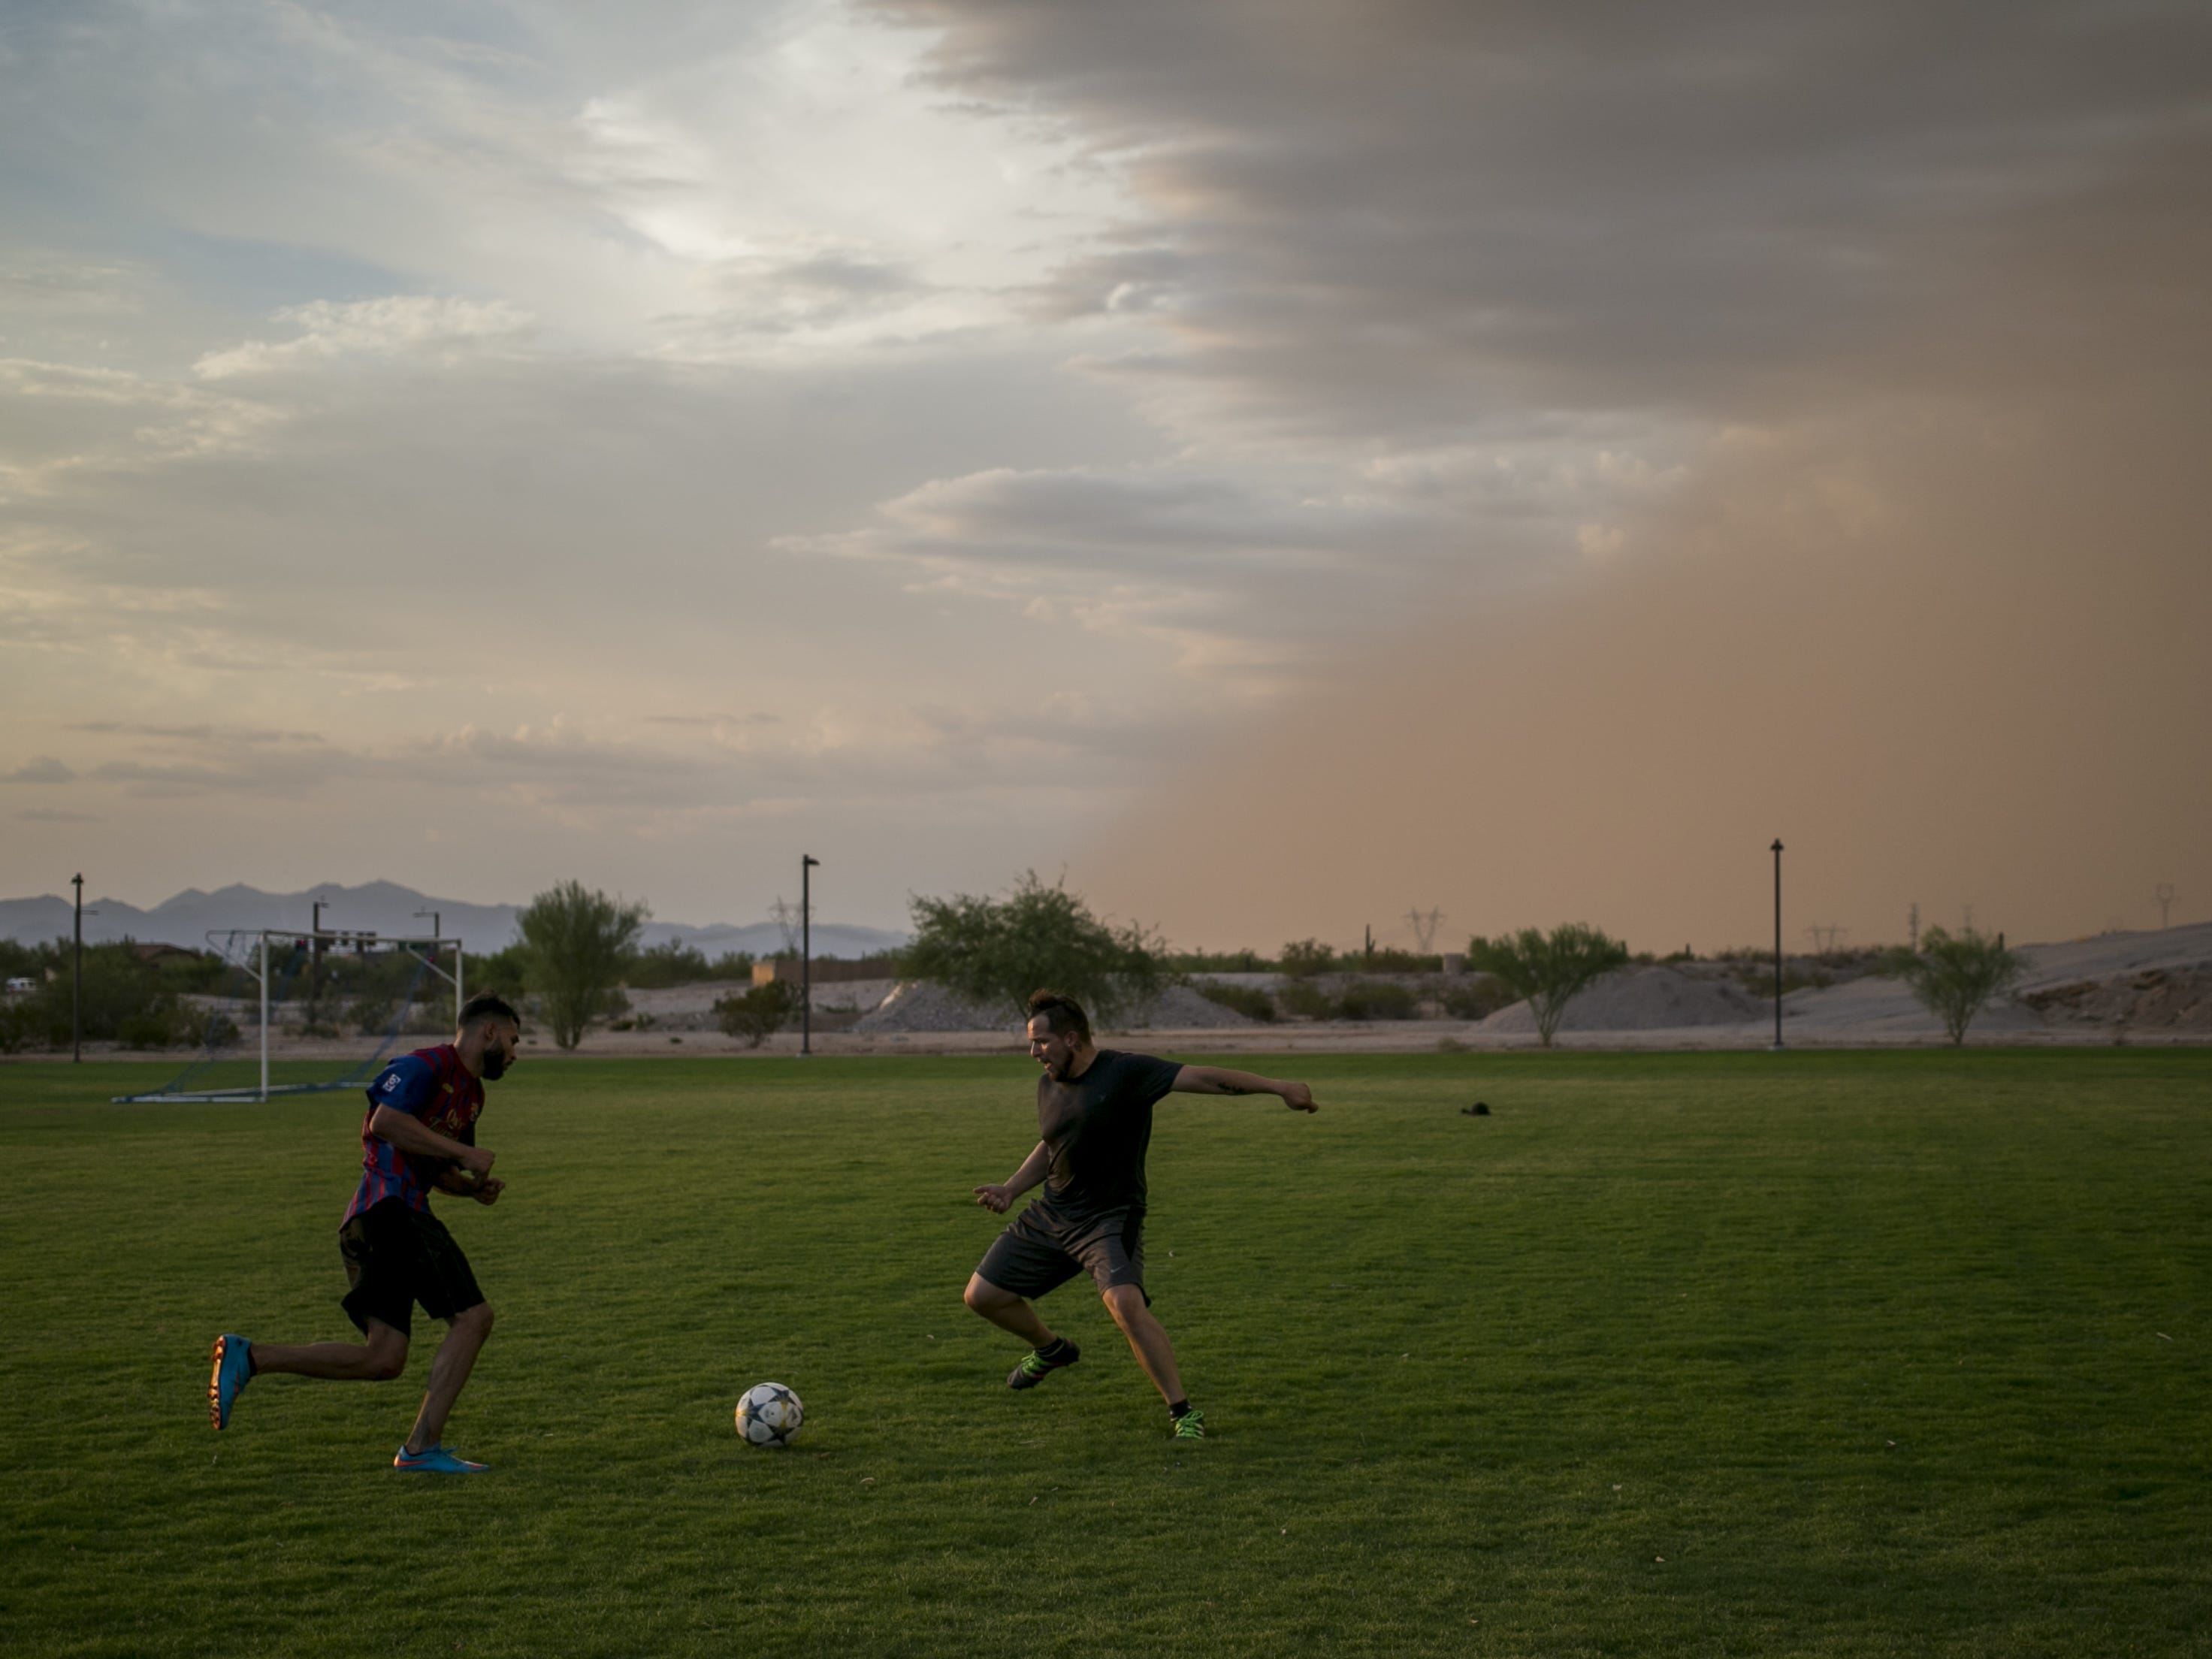 Cristian Martinez (right) and Rosendo Gonzalez (left) play soccer as a dust storm approaches near Estrella Foothills High School in Goodyear, Ariz. on Sun. Aug 12, 2018.